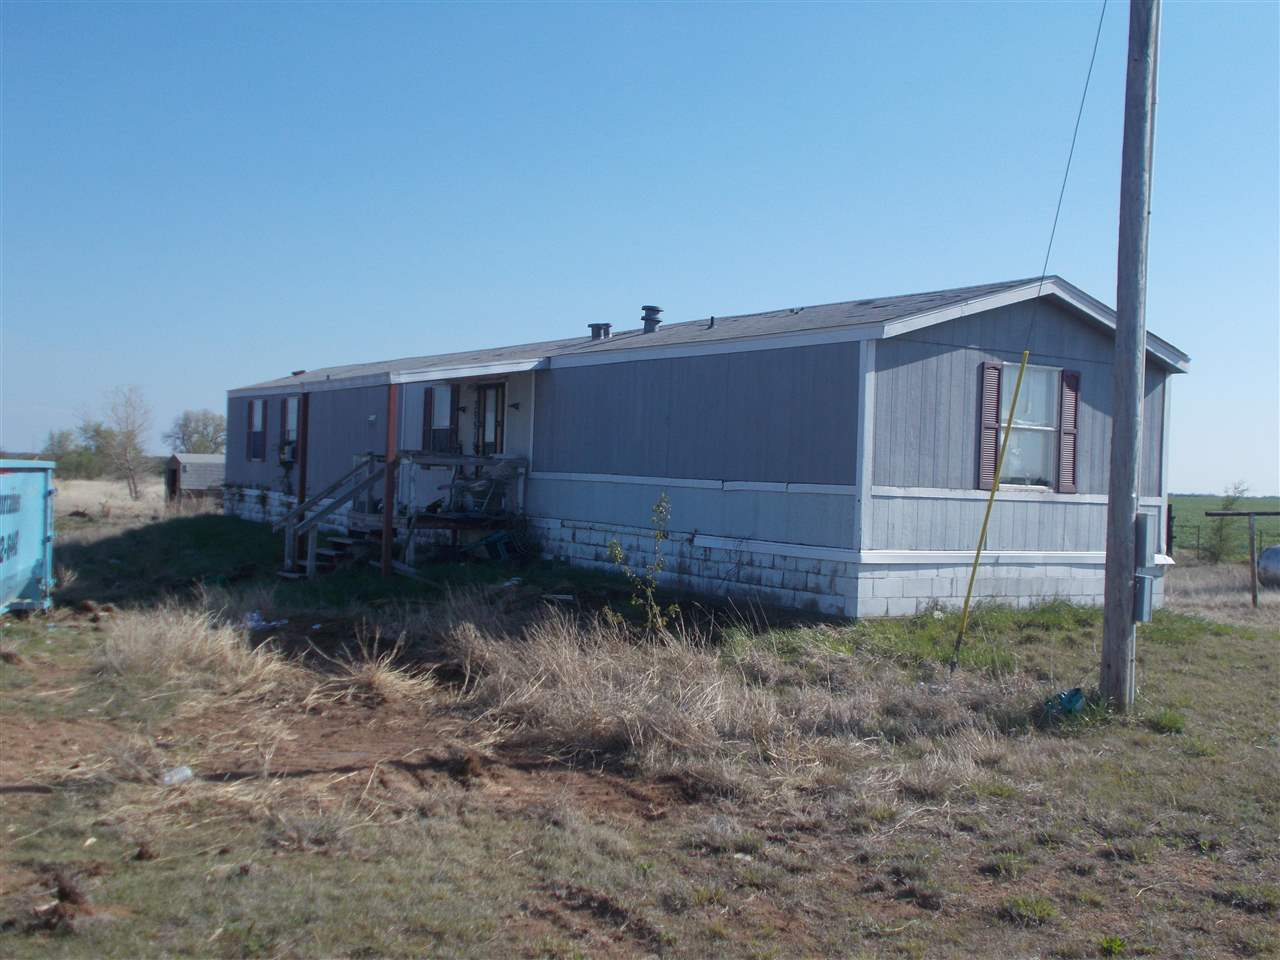 Single Wide Mobile Home on Permanent Foundation.  Home needs lots of love.  Could be taken out and b